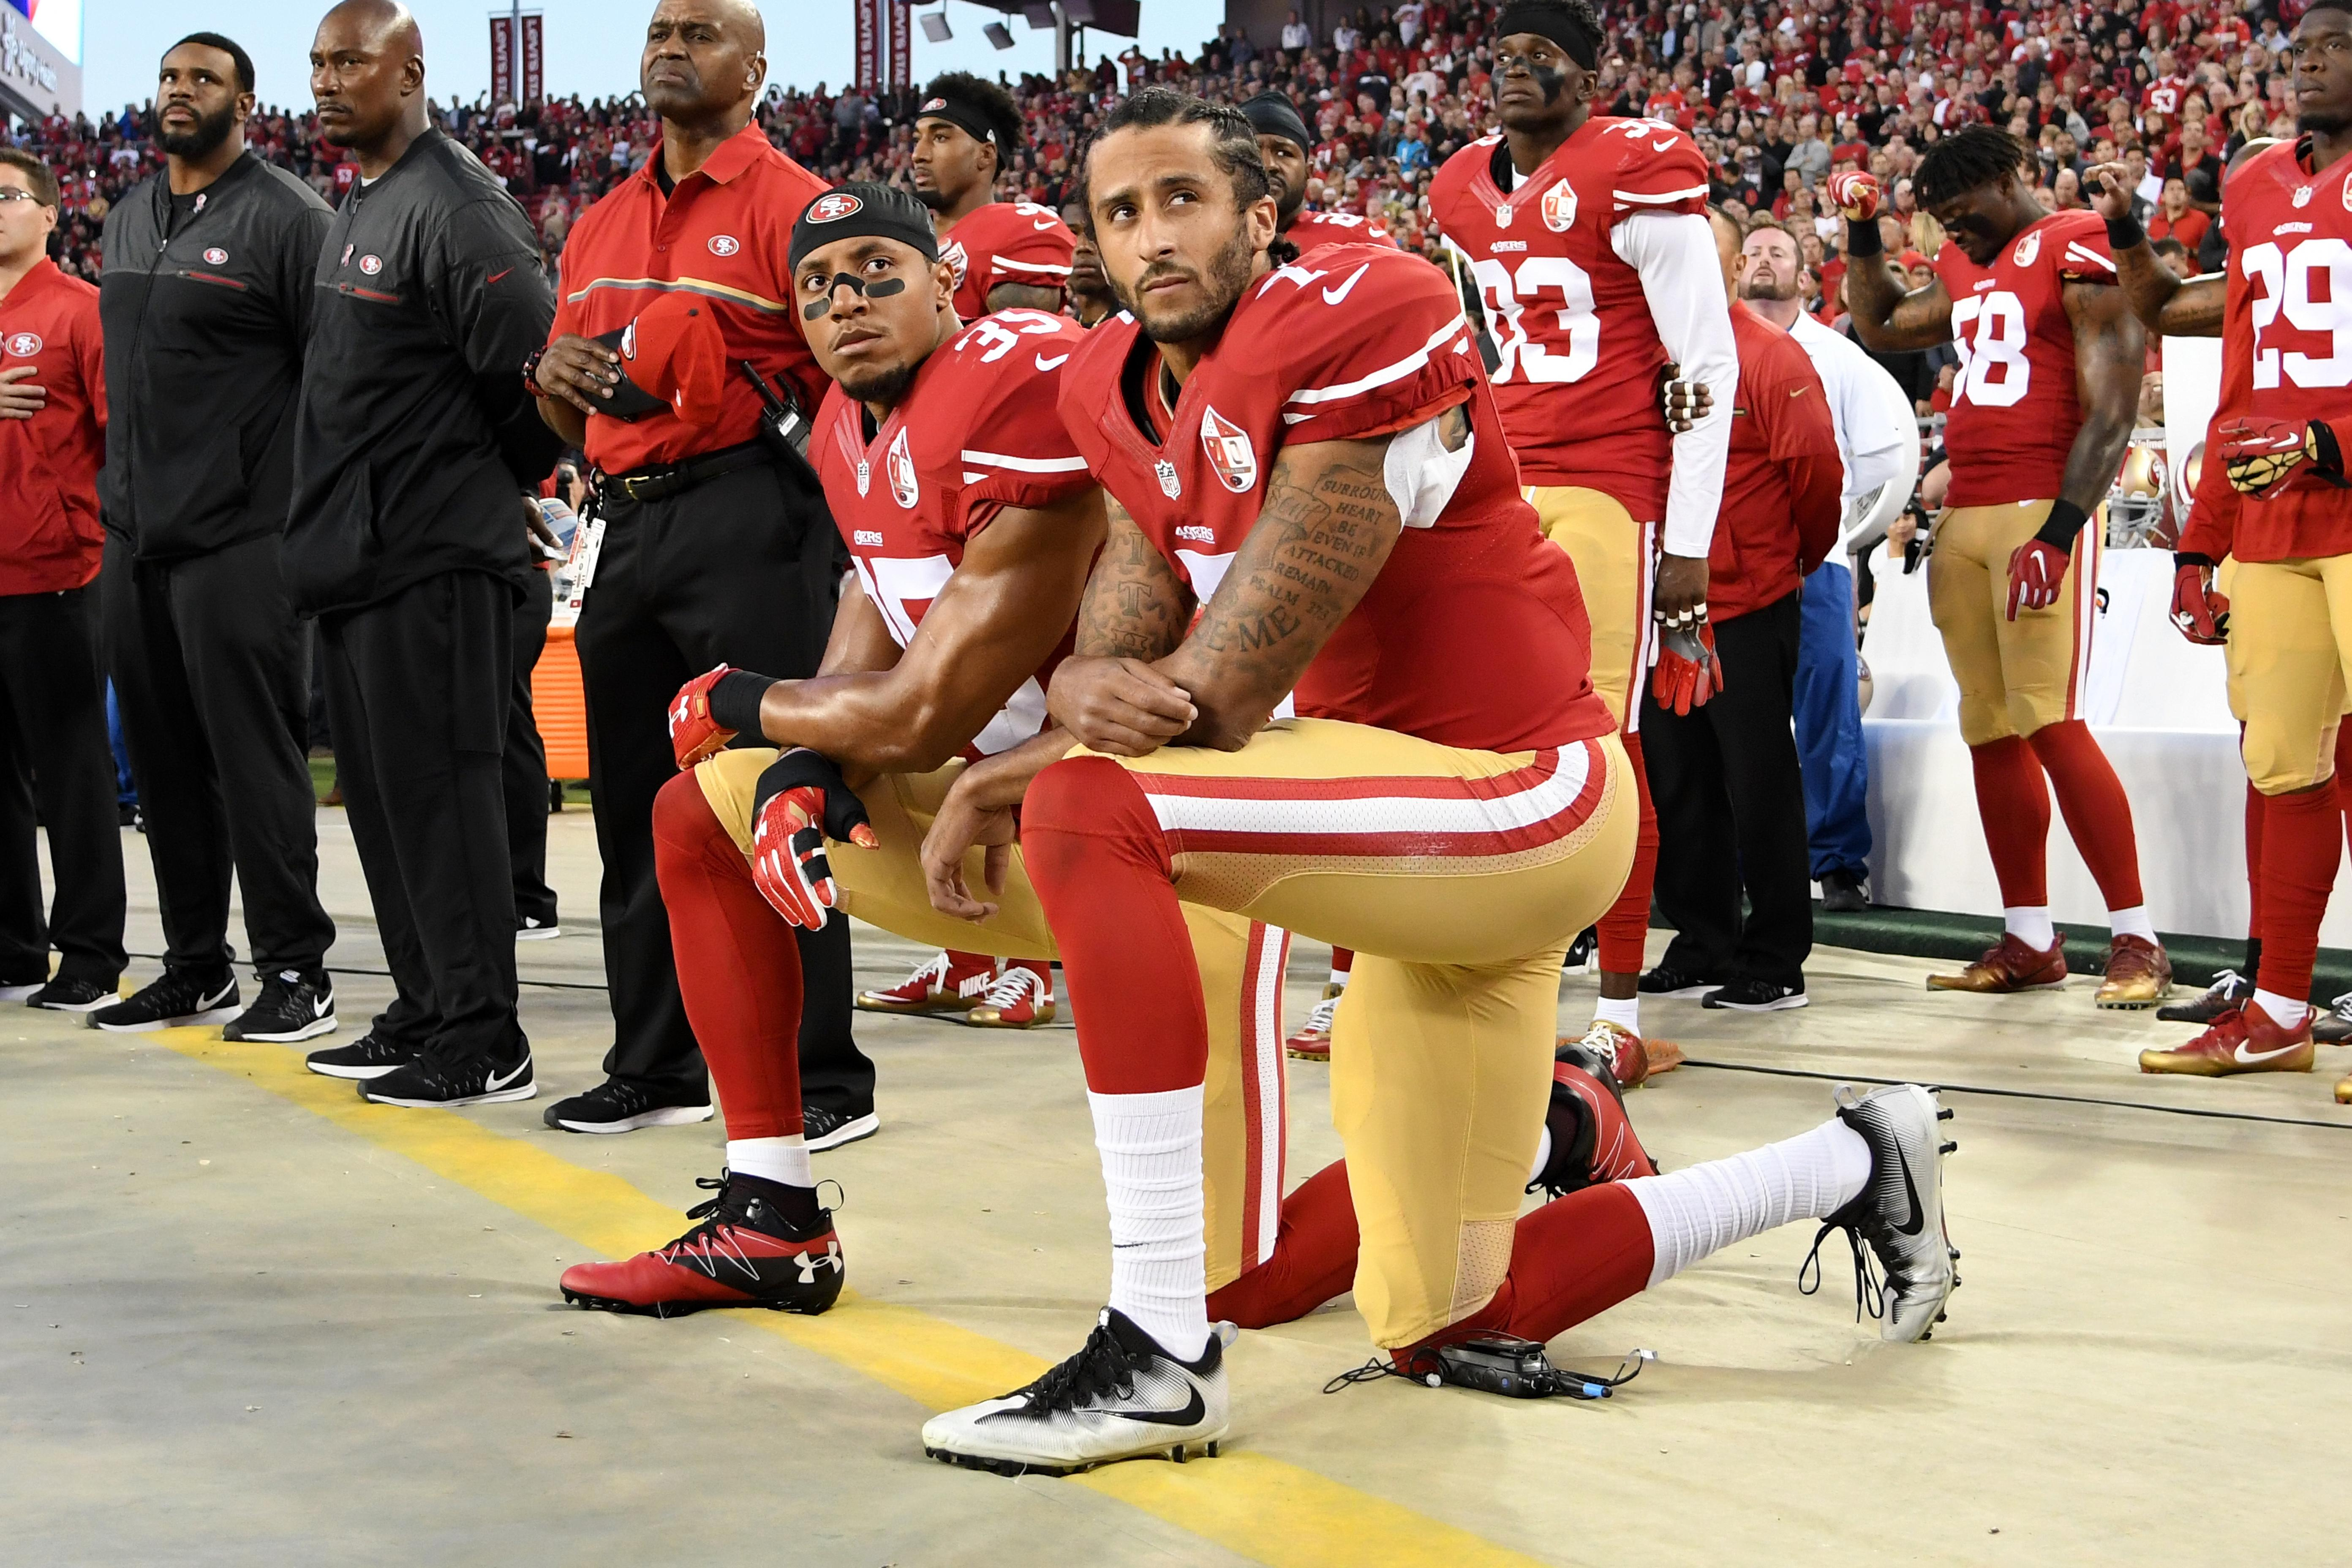 Colin Kaepernick has not been able to find a team since being dropped following his protest in 2016